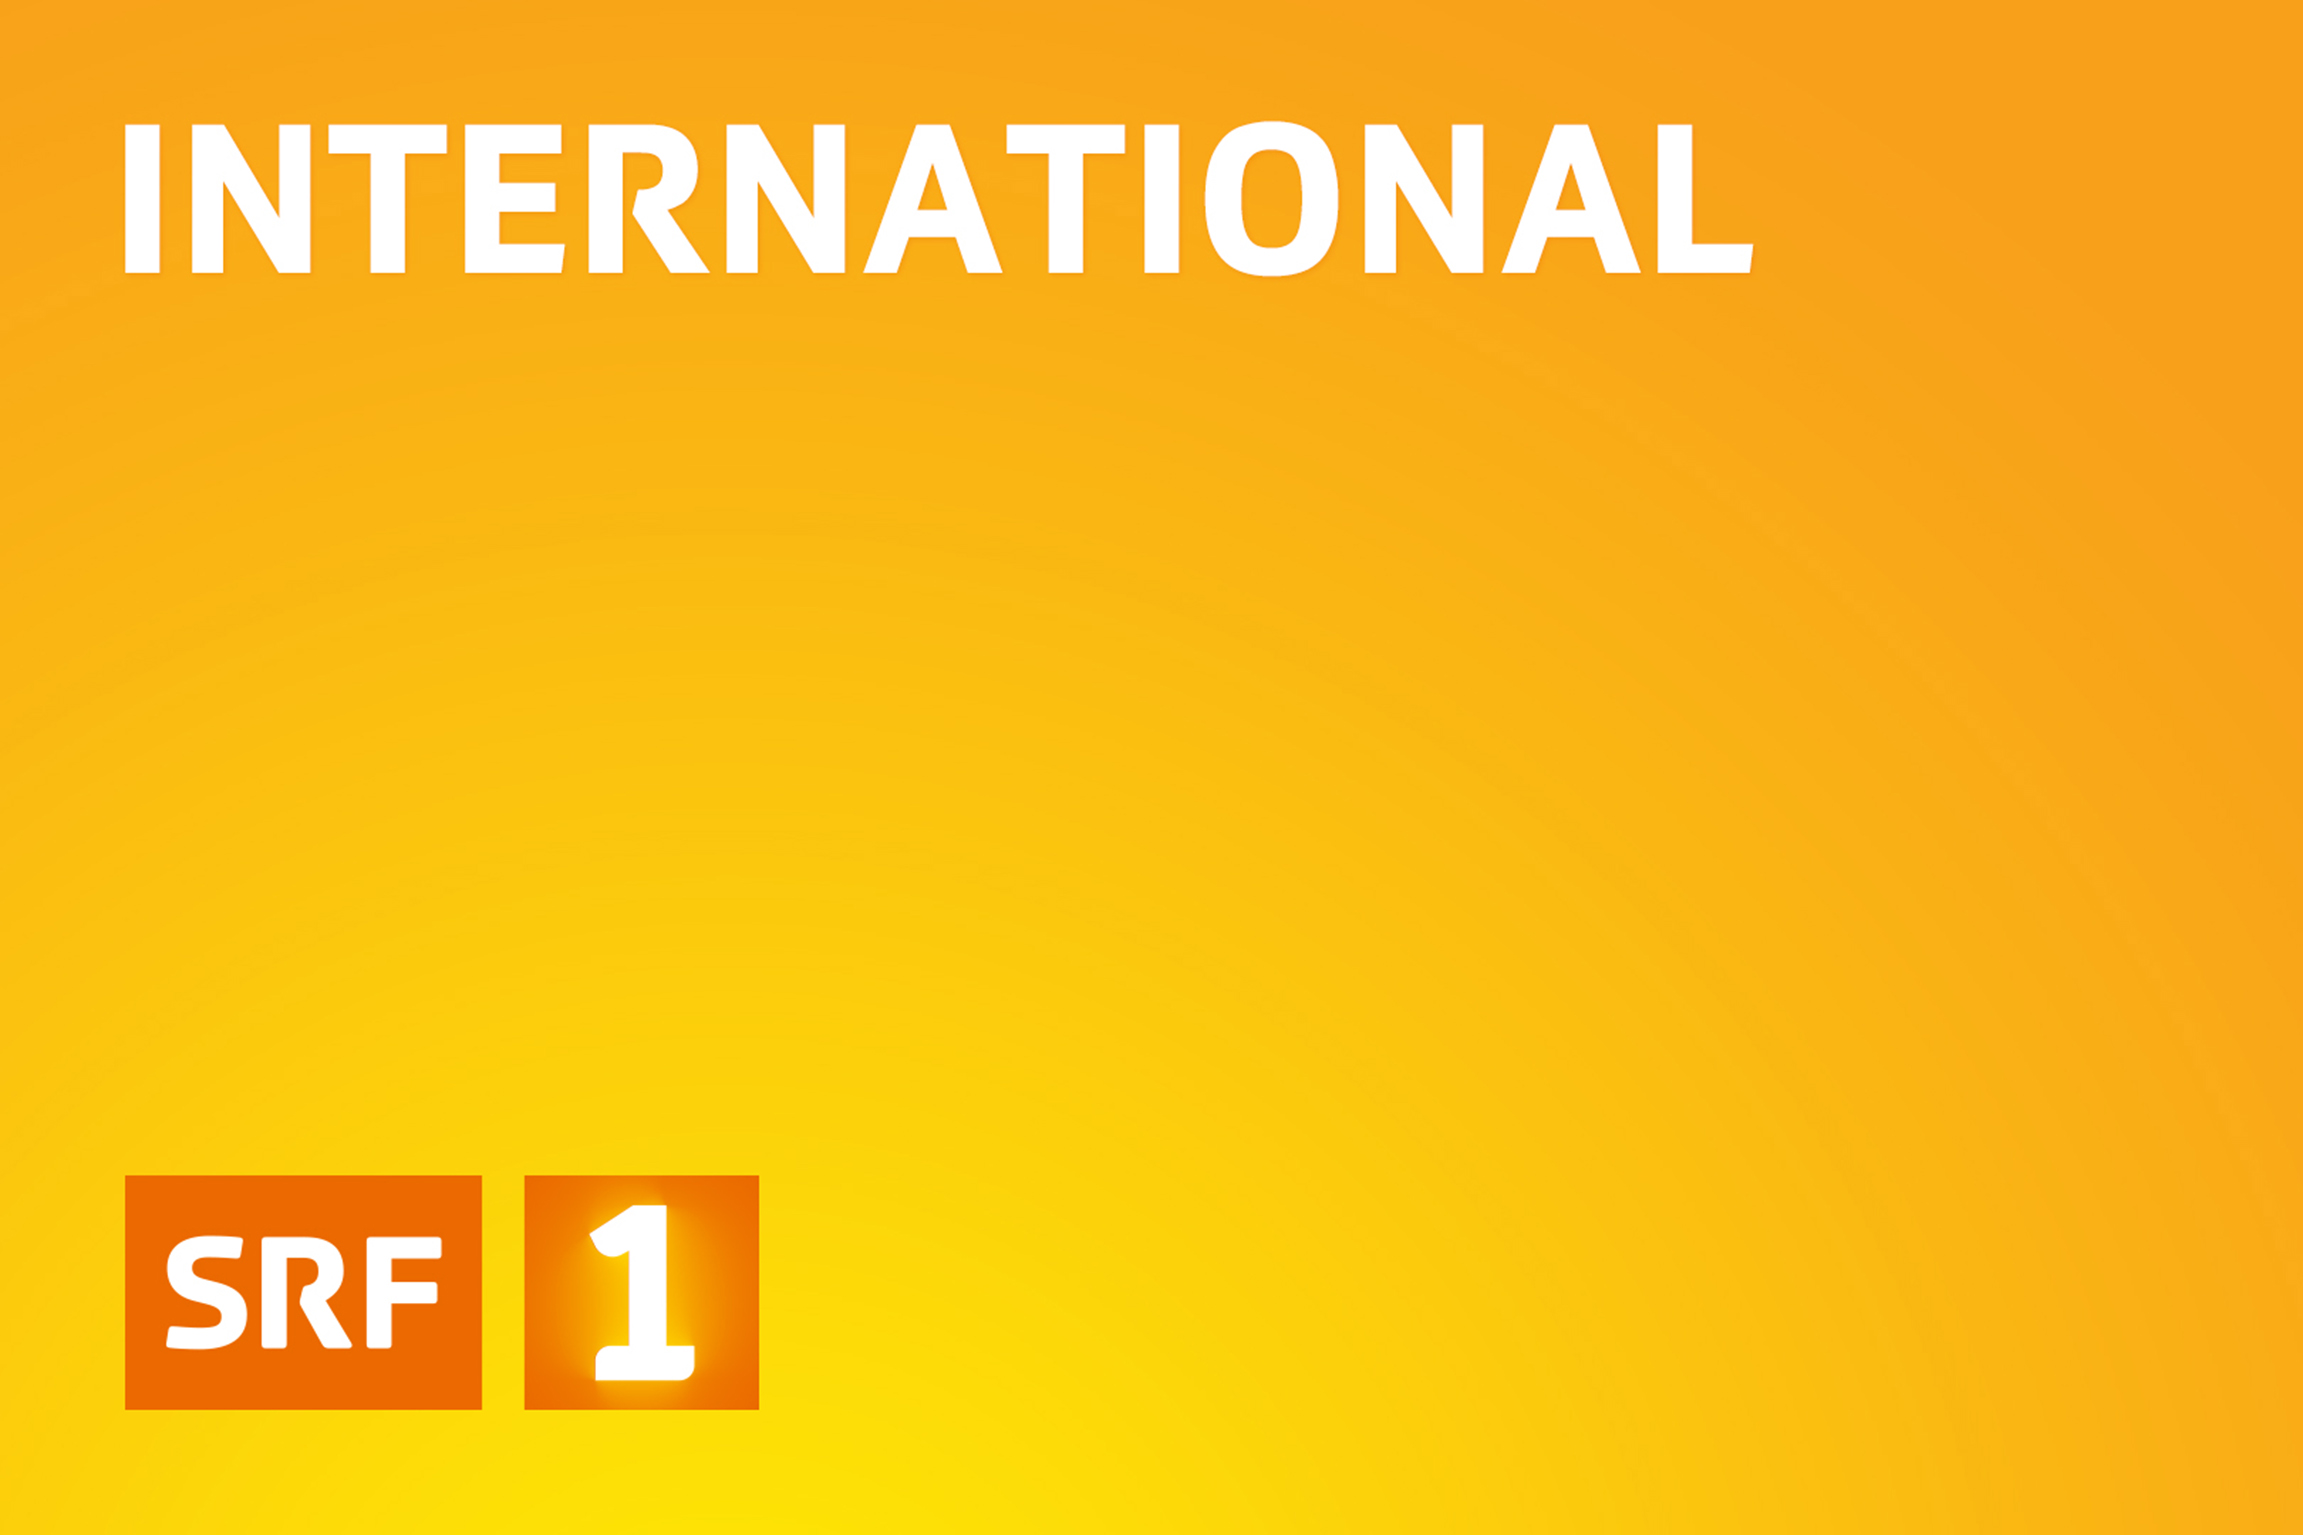 International Radio SRF 1